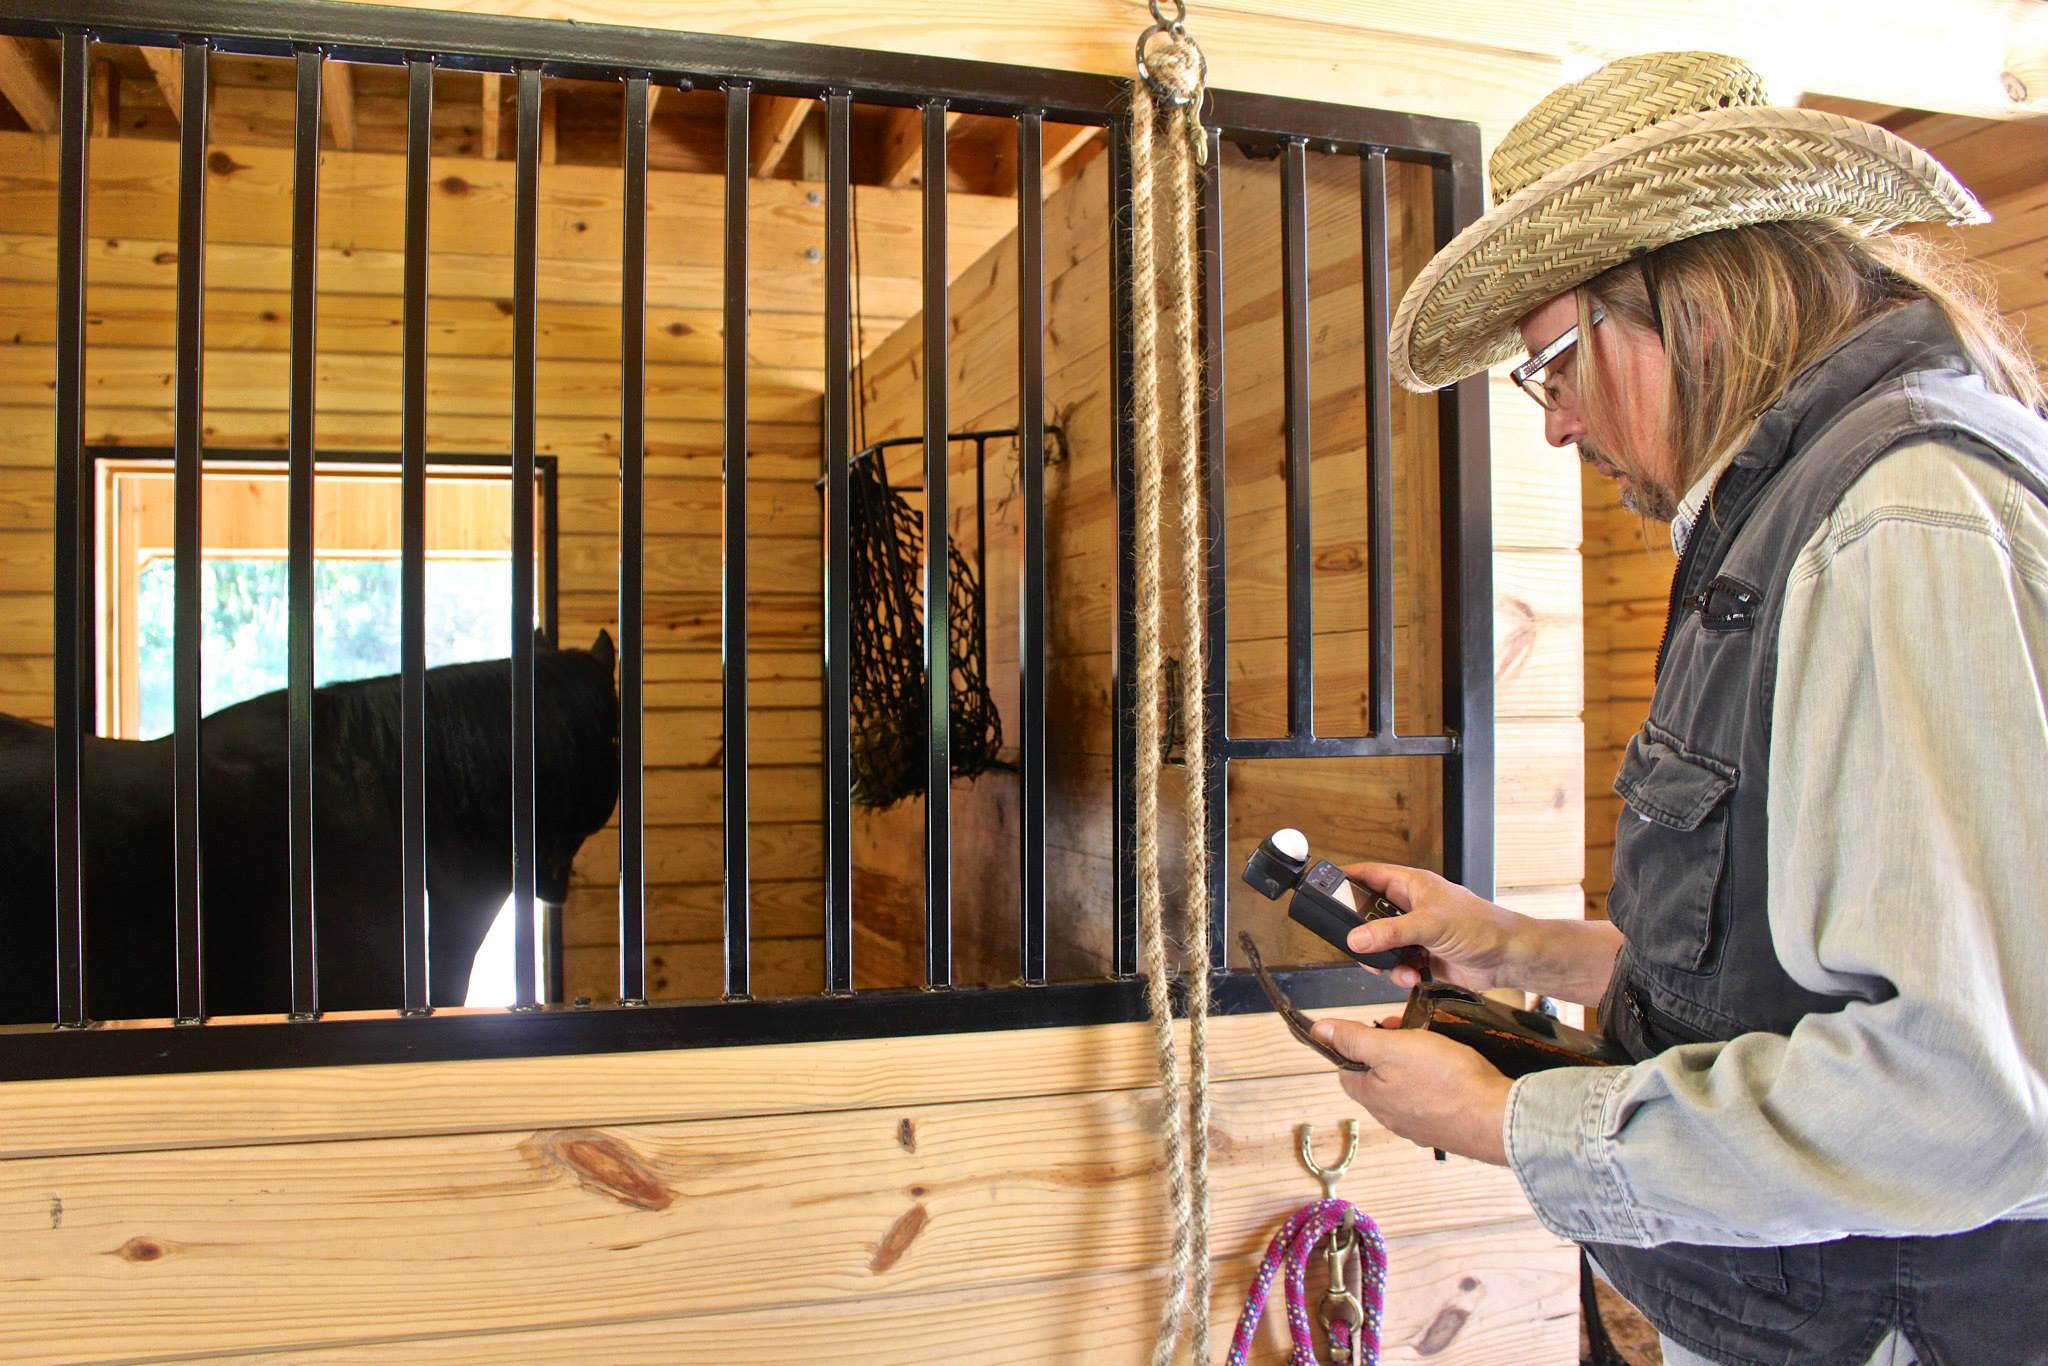 D.P. Luc Nicknair using the light meter in stables, 2014.